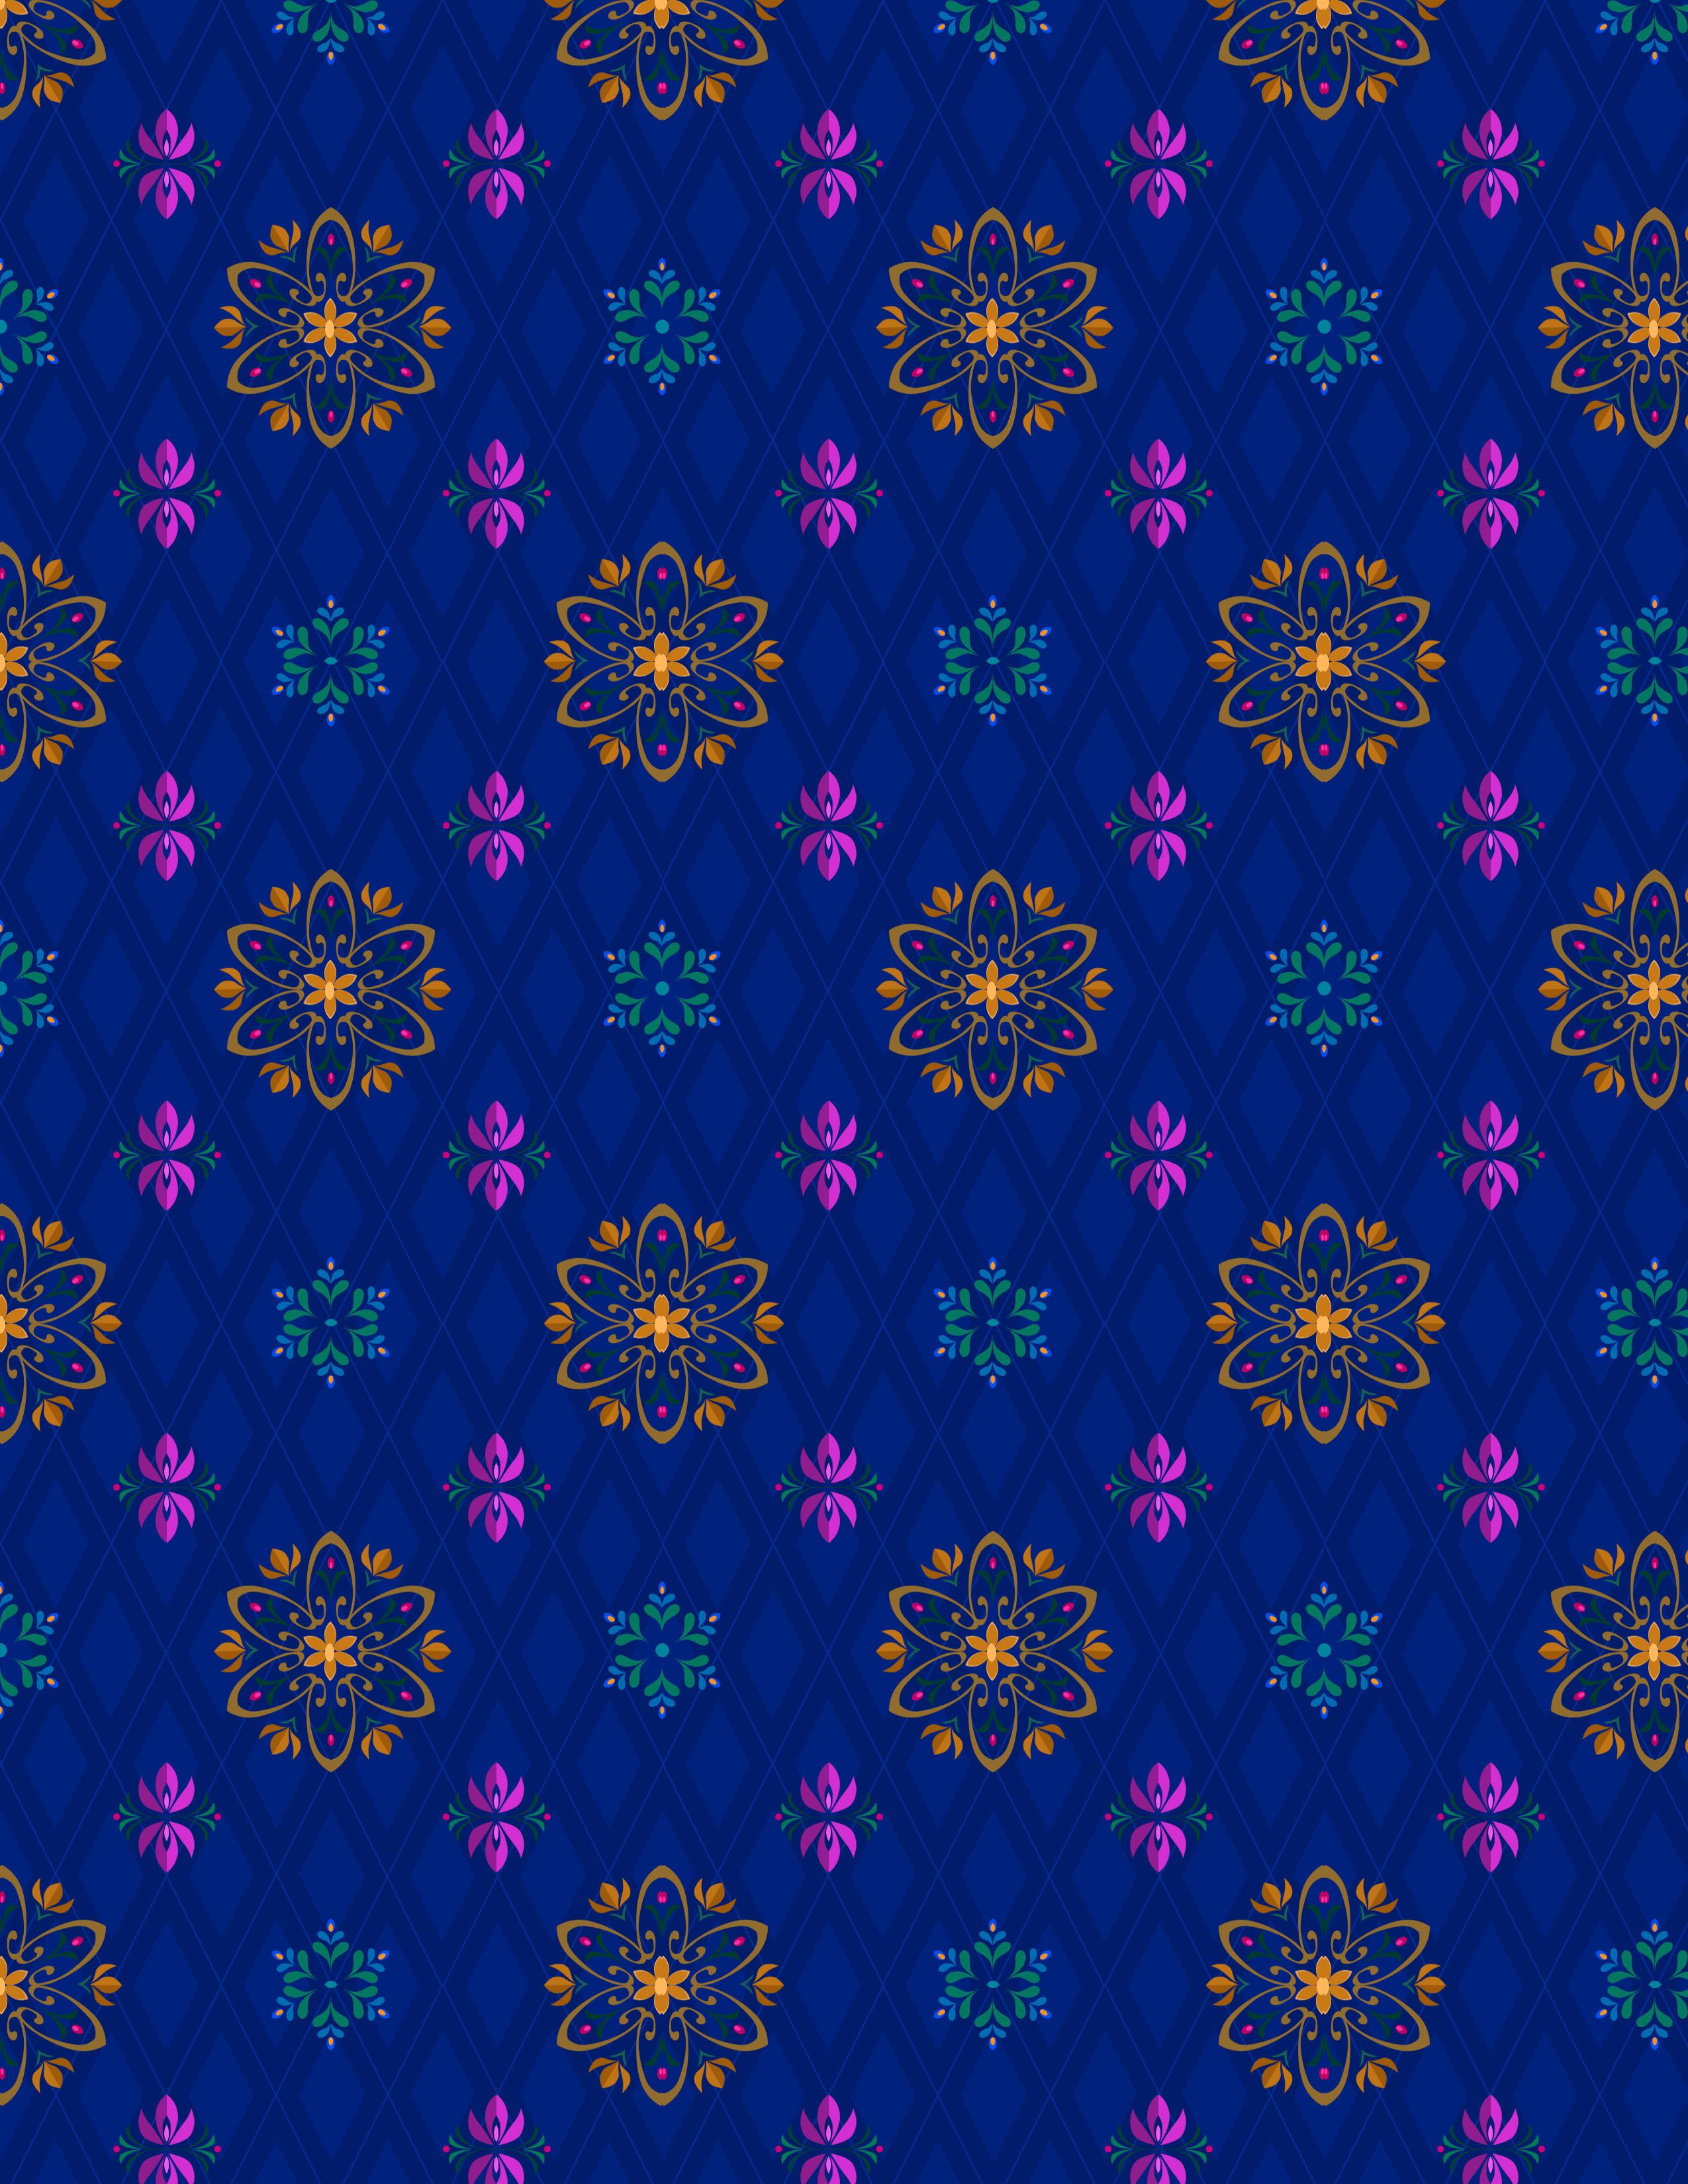 Disney Textiles Wrapping Paper Edition Disney style